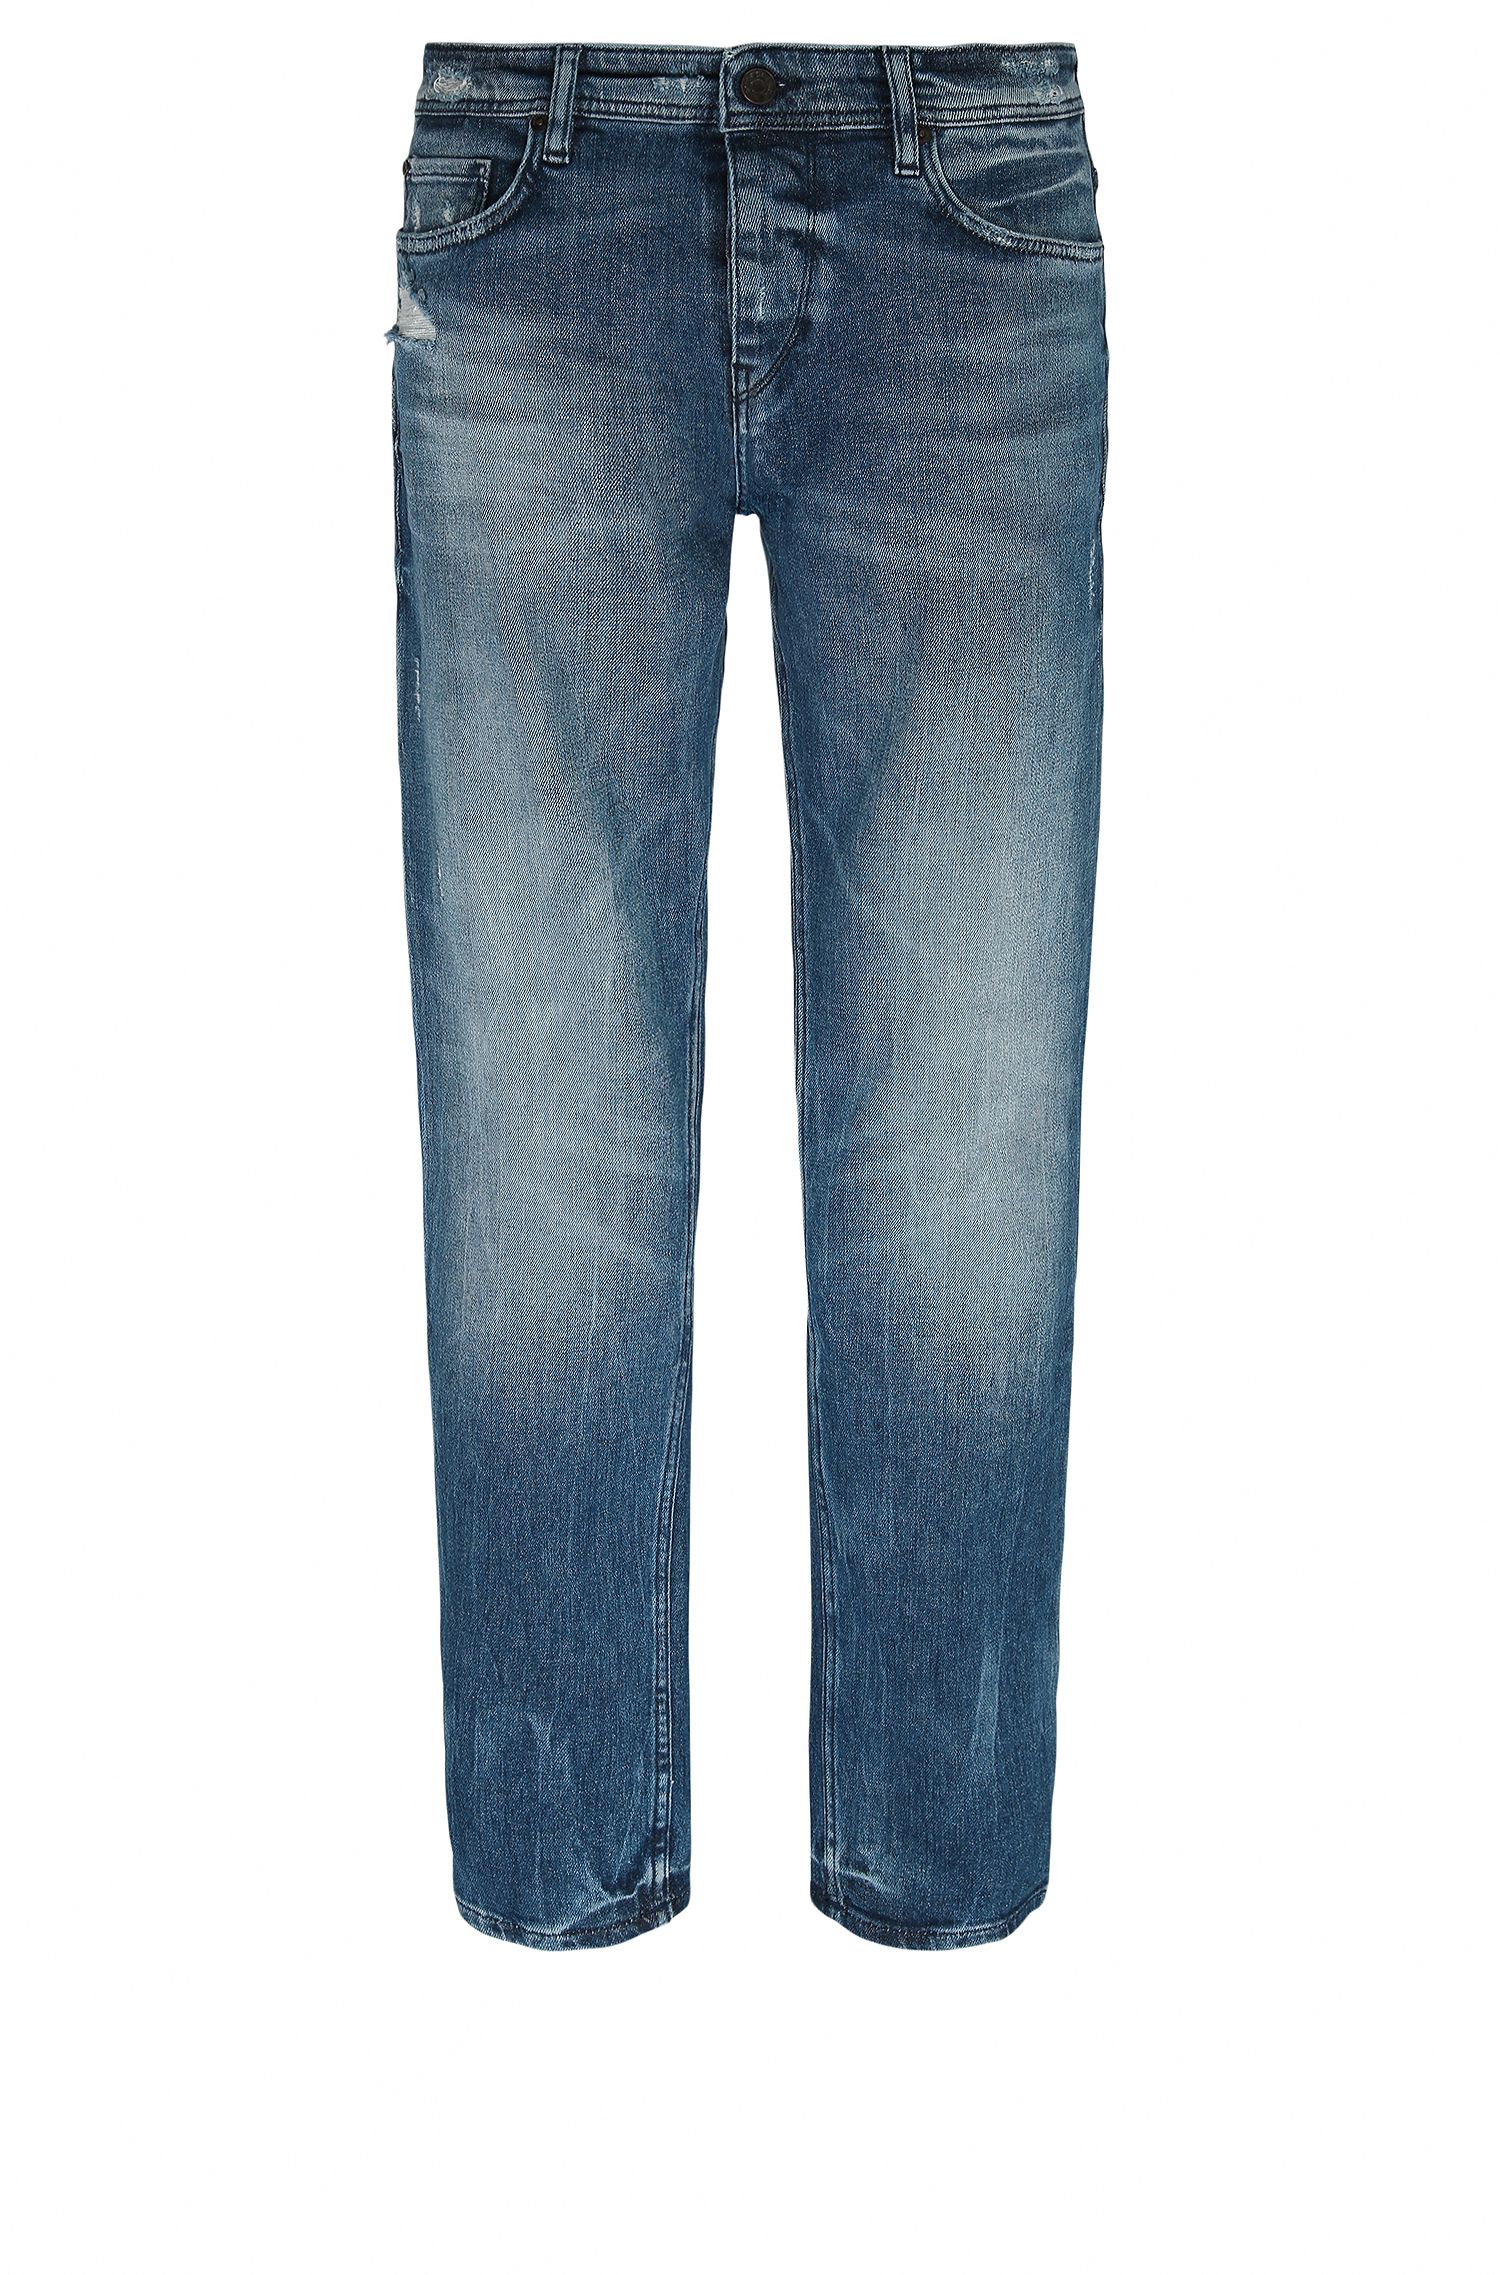 11 oz Stretch Cotton Jeans, Tapered Fit | Orange90